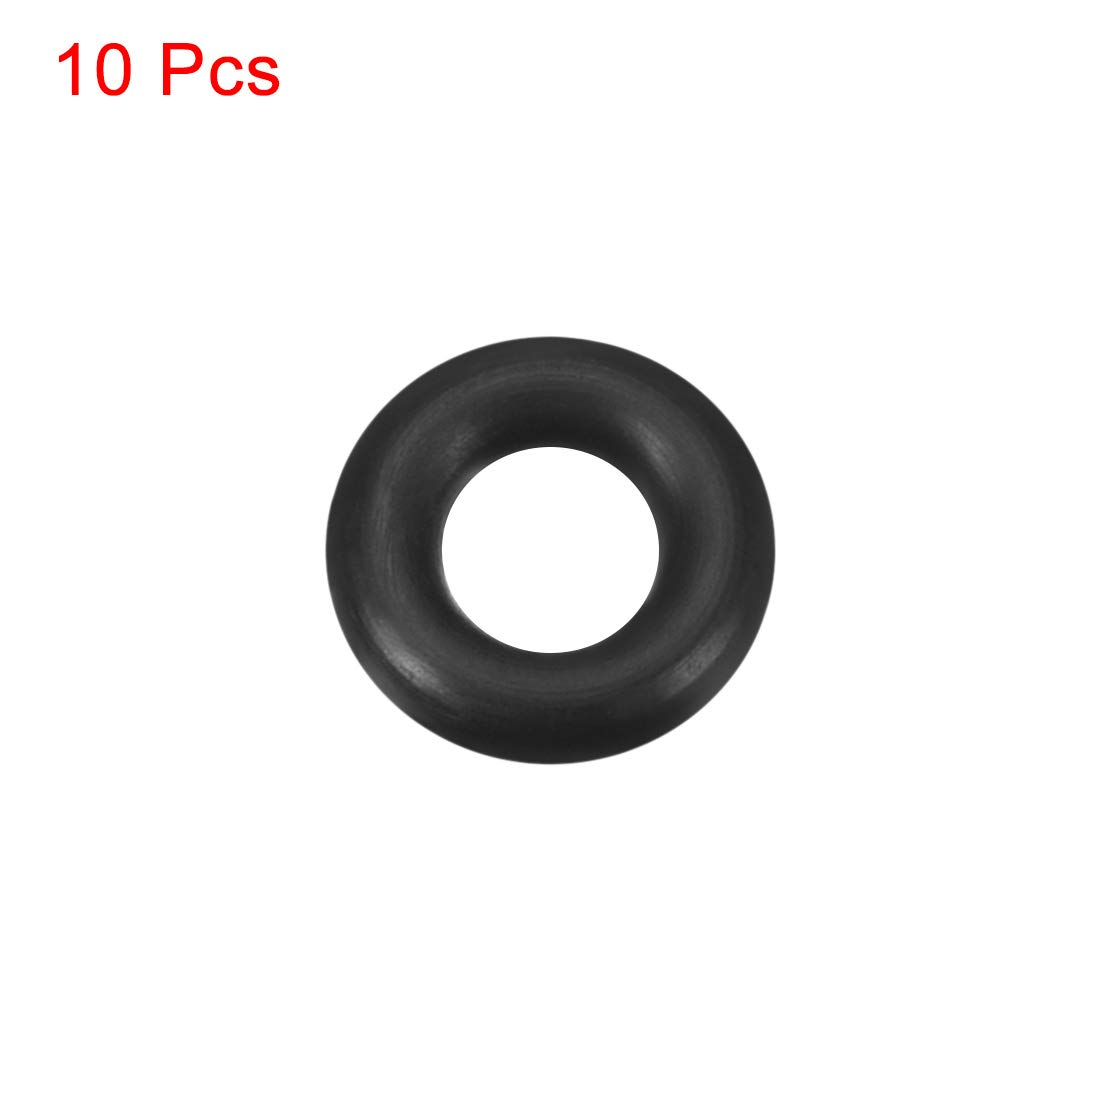 12mm OD 6mm Inner Diameter Round Seal Gasket Pack of 10 uxcell O-Rings Nitrile Rubber 3mm Width